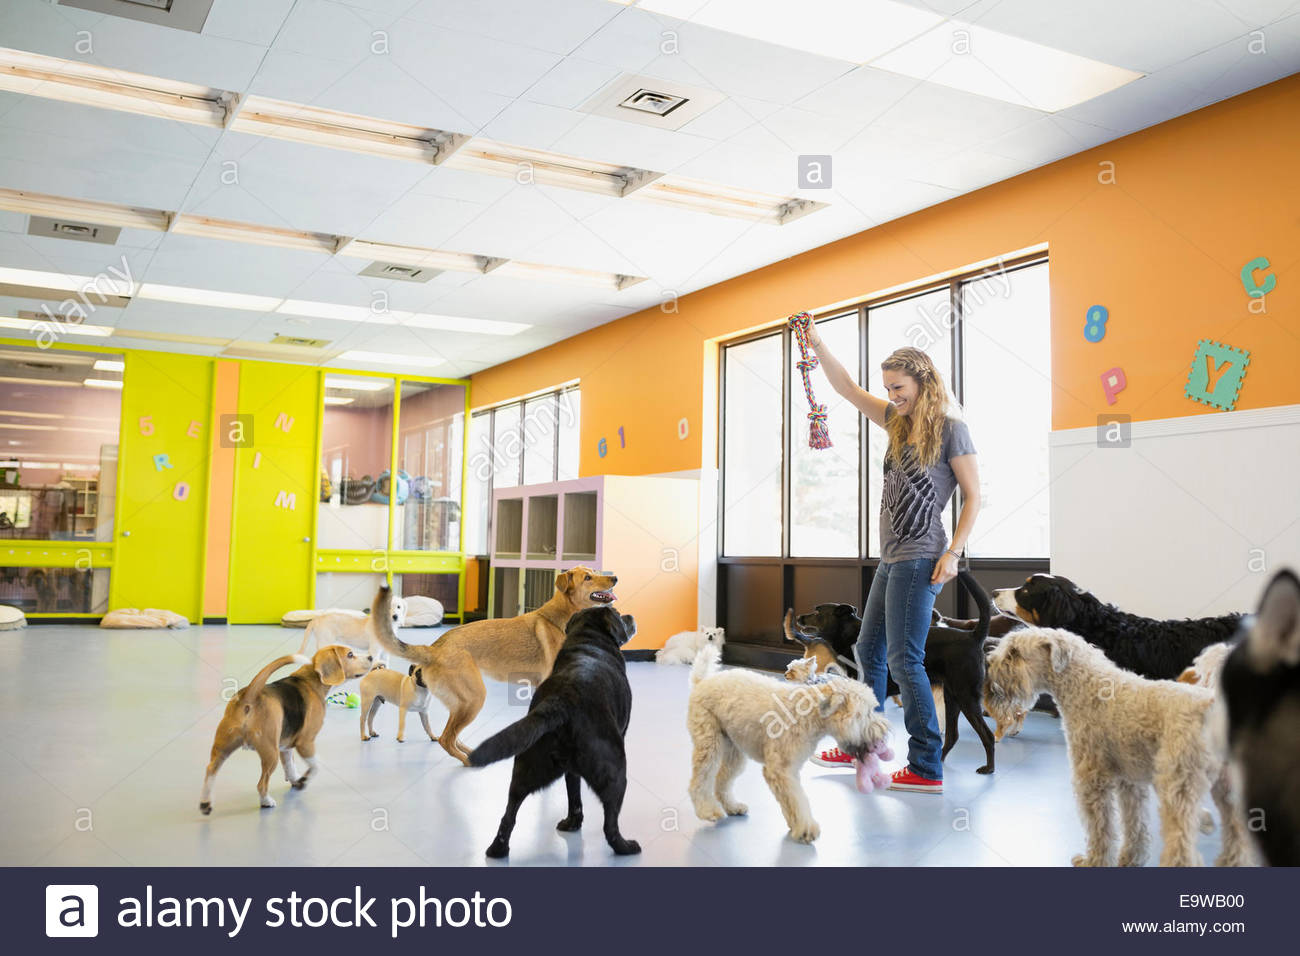 Woman playing with dogs at dog daycare - Stock Image